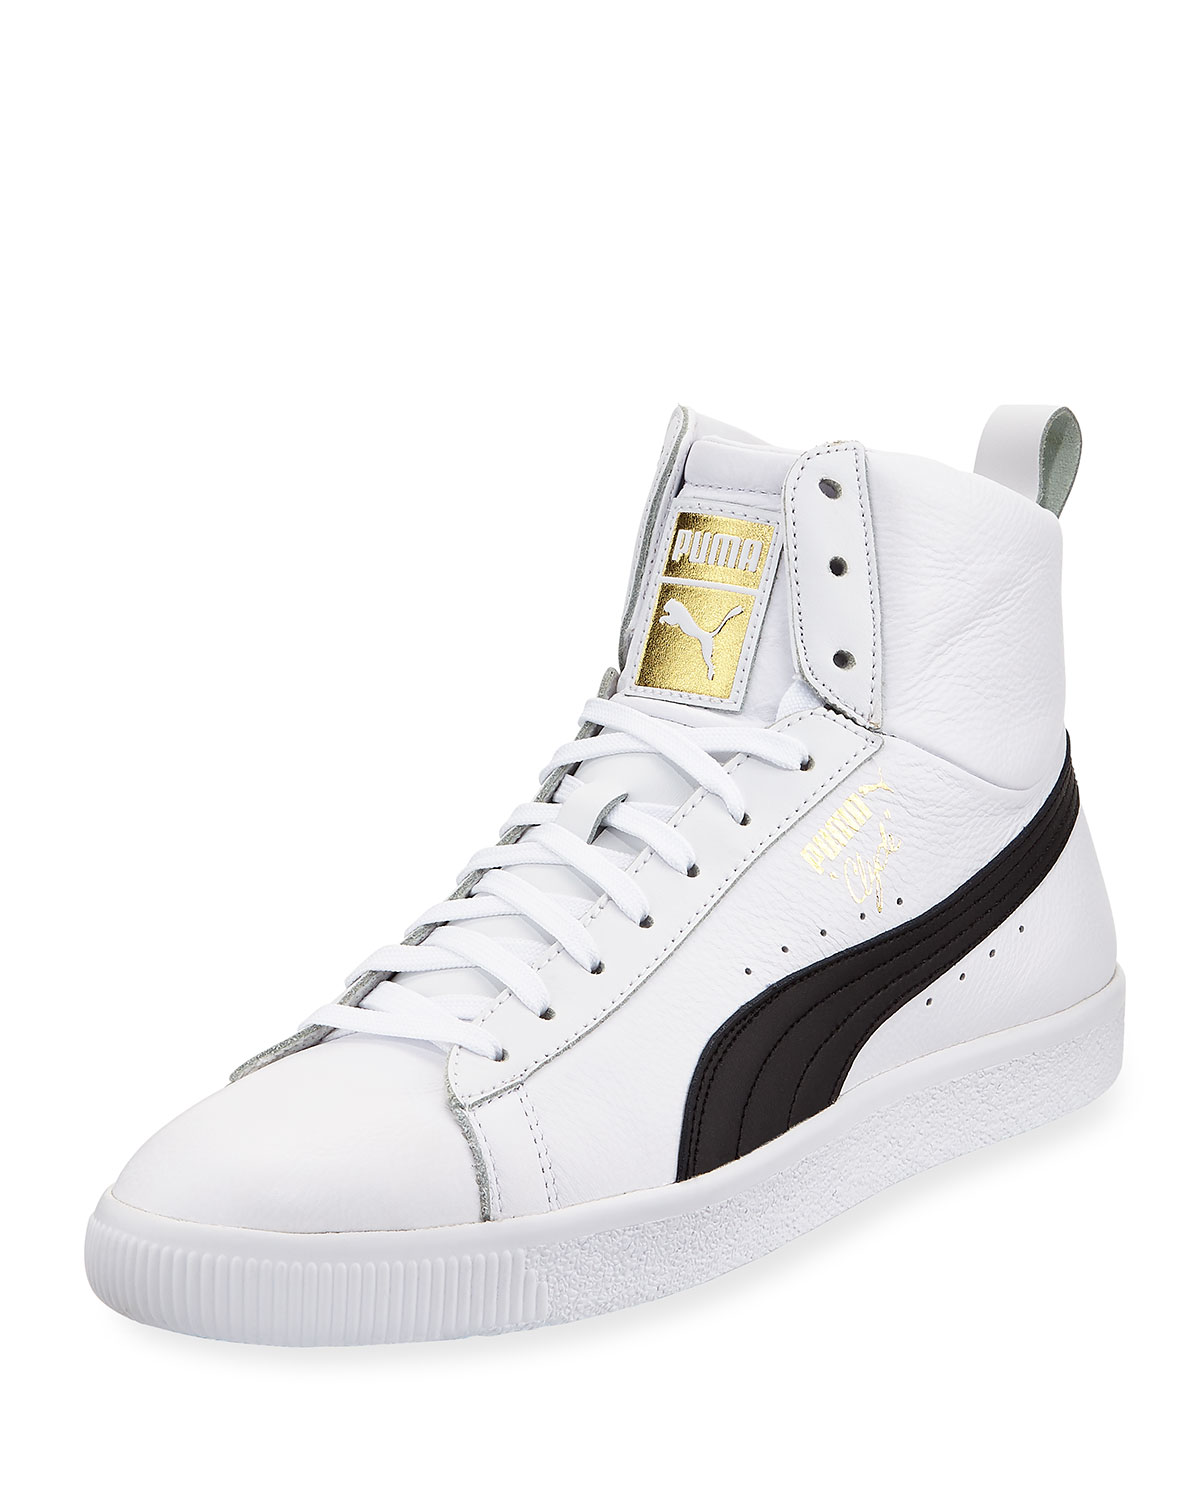 abcf79af1310 Puma Men s Clyde Mid Core High-Top Leather Sneakers